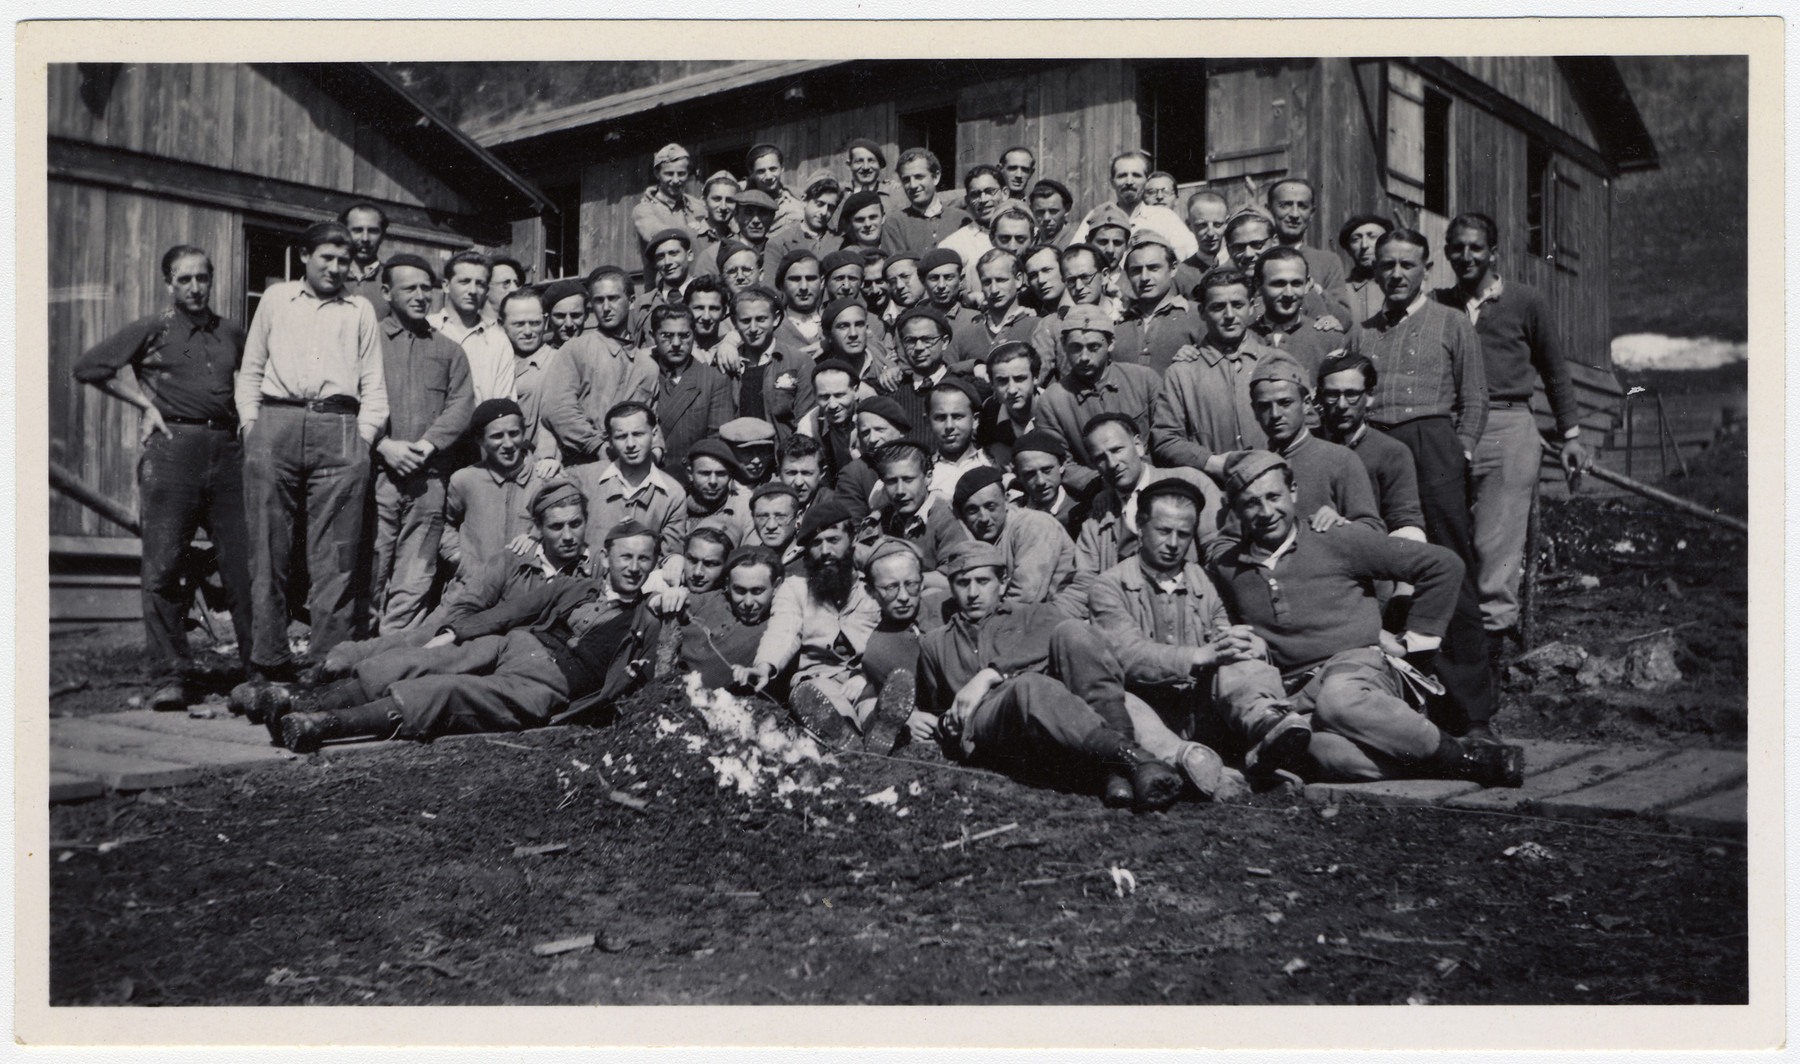 Group portrait of Jewish internees in an unidentified Swiss labor camp.  Max Schattner is pictured in the front row, second from the right with his hands clasped around his knees.